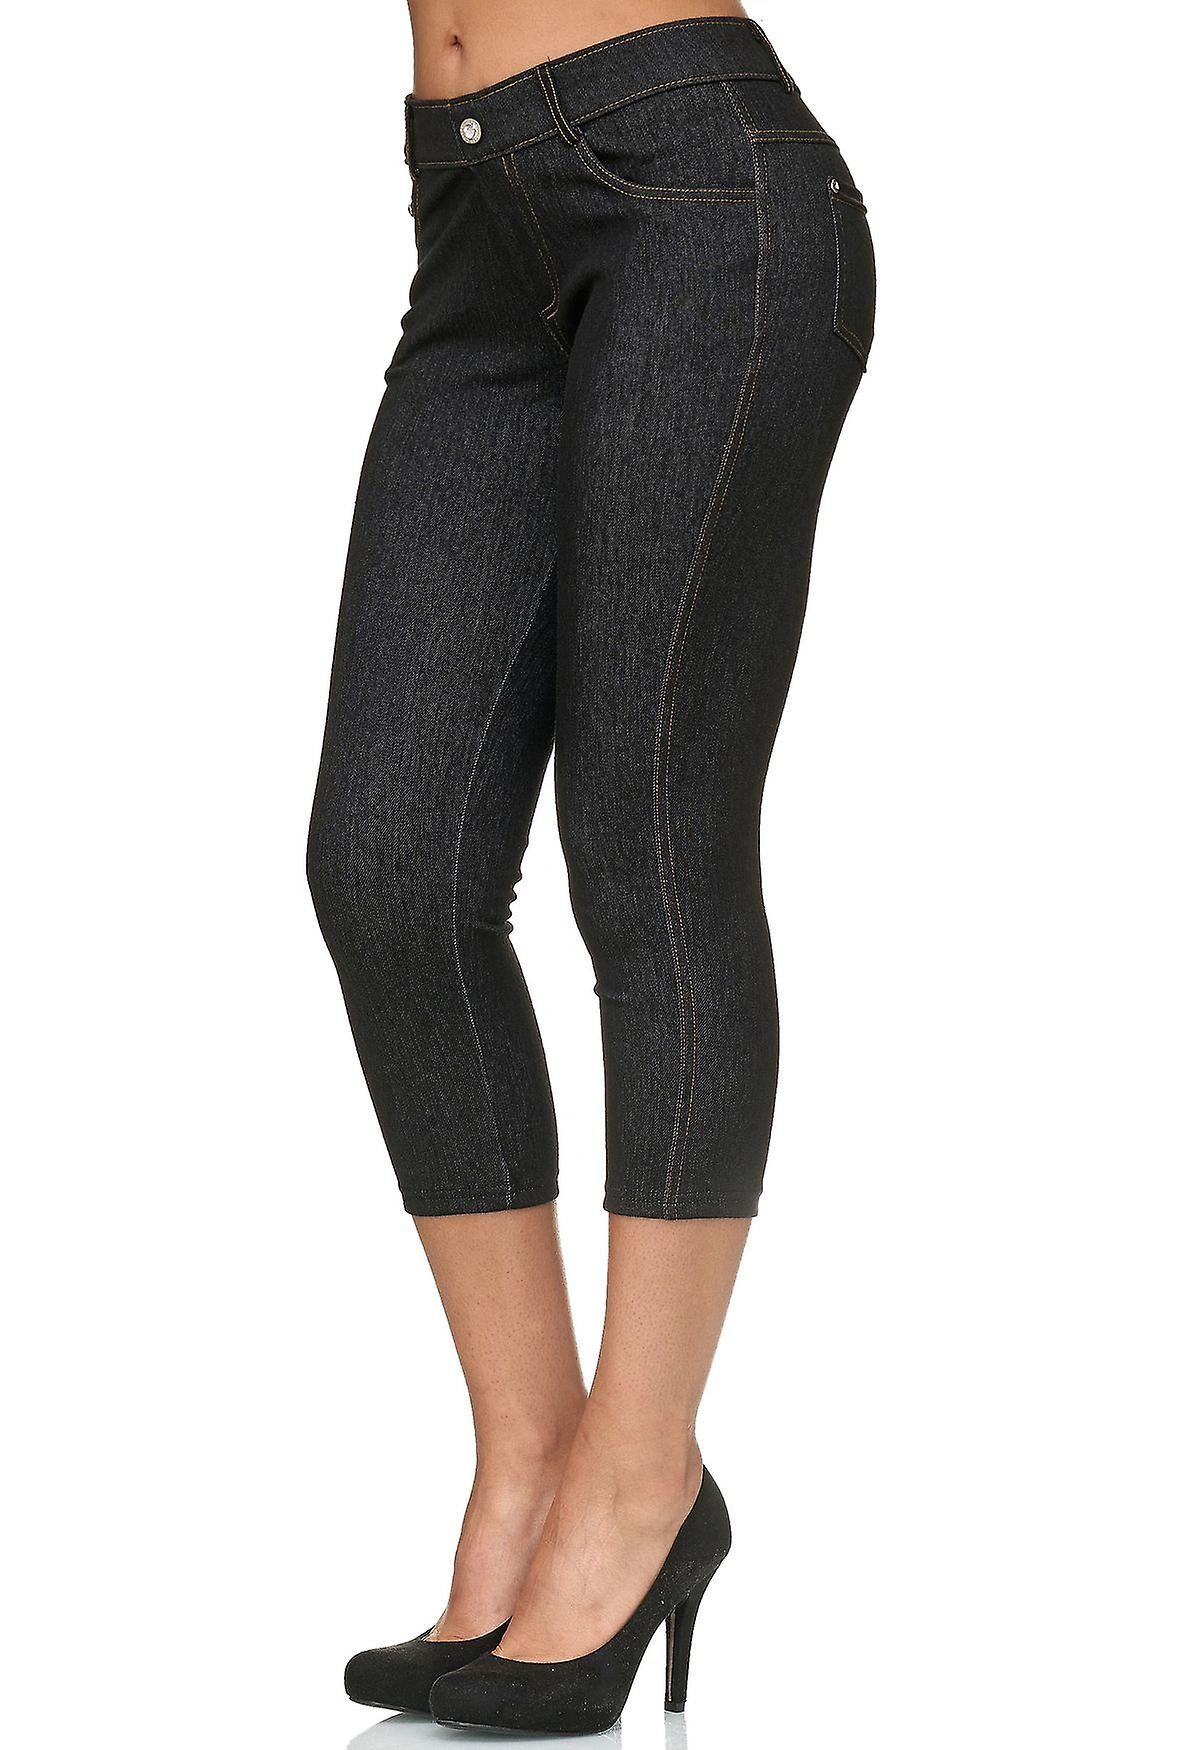 Damen Capri Hose Skinny Jeggings Hüfthose Jeans Treggings Strasssteine Push Up